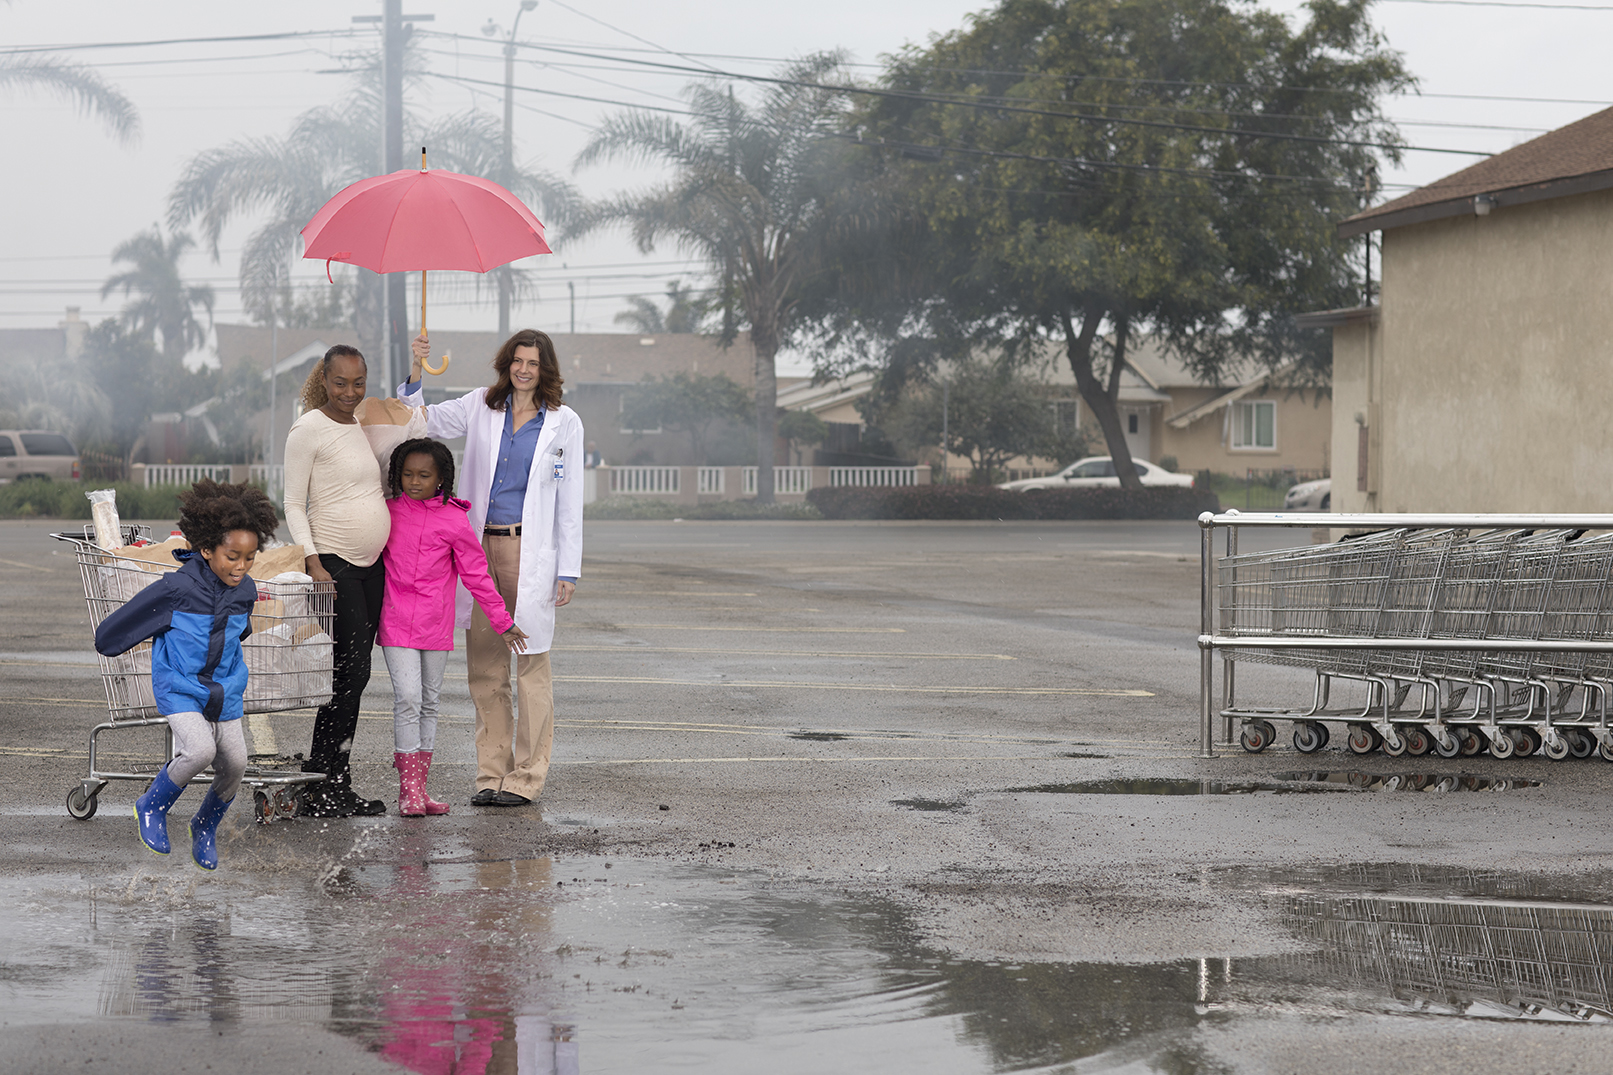 retouched female doctor holding a pink umbrella over a family of three in rainy parking lot